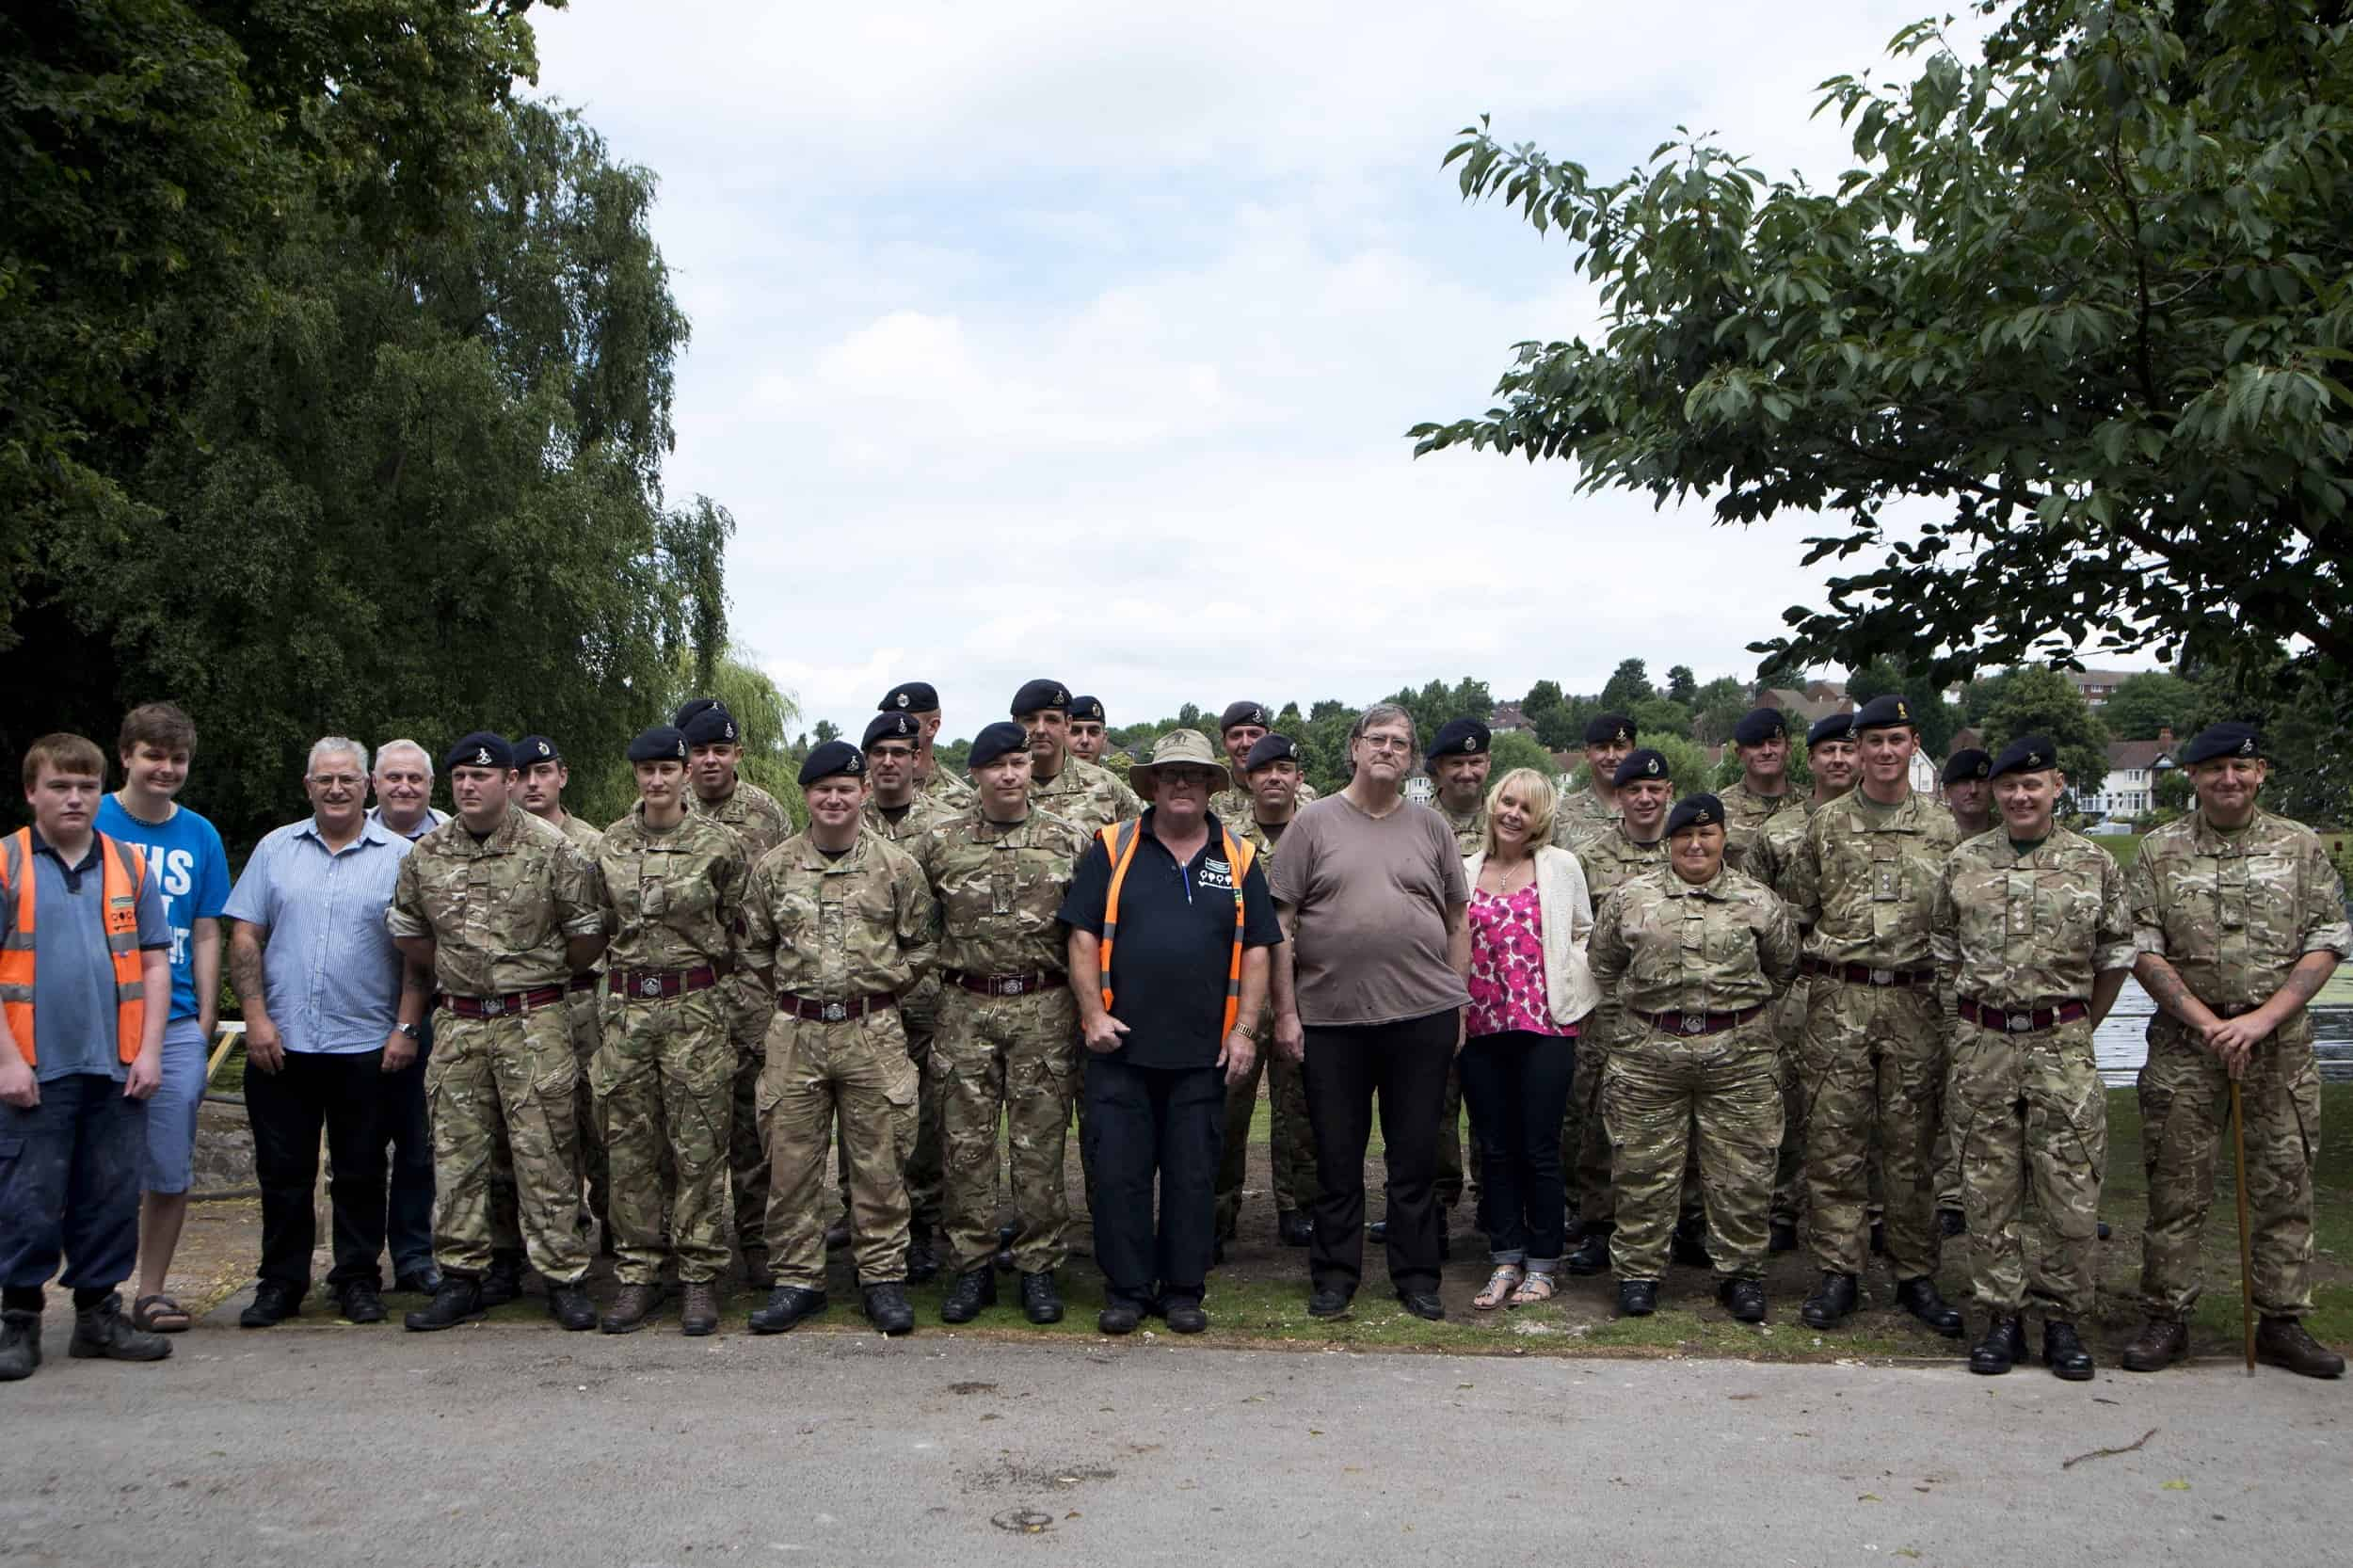 Glendale helped to transform the island, working with the Friends of Brookvale Park, Birmingham Council, and Army Reservists